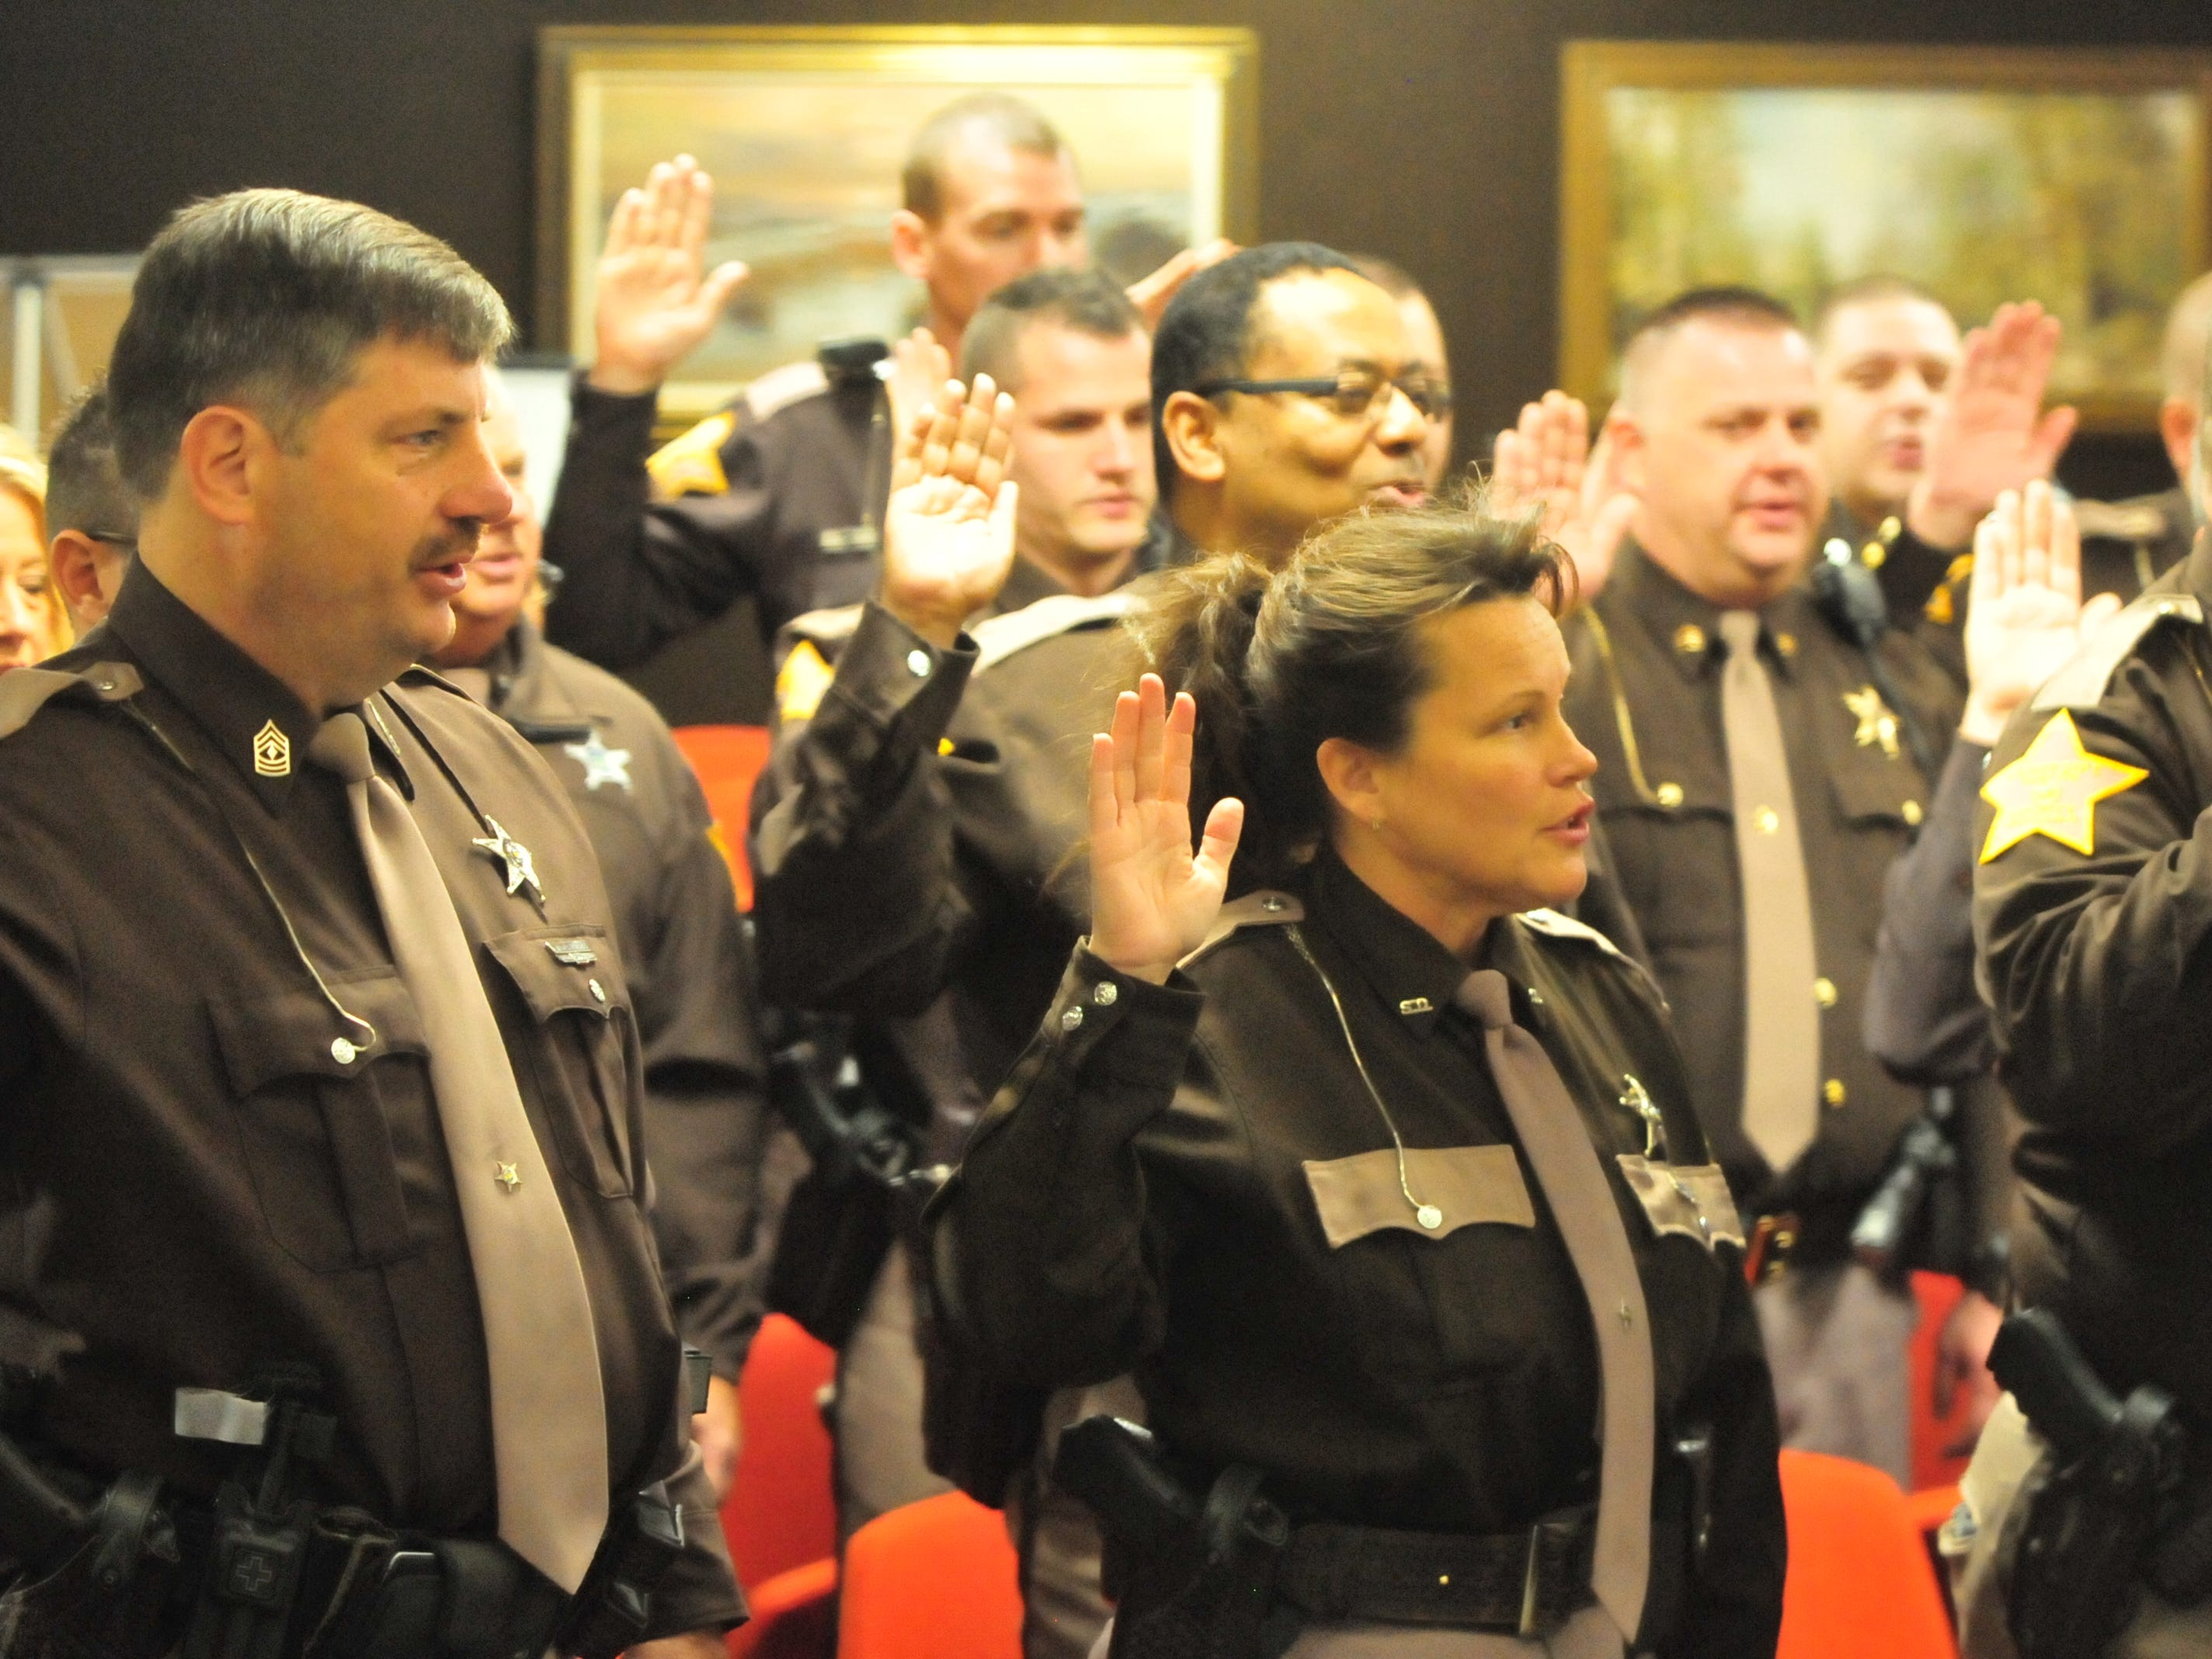 Wayne County Sheriff's Office personnel are sworn in Friday by Wayne County Clerk Debra Berry.